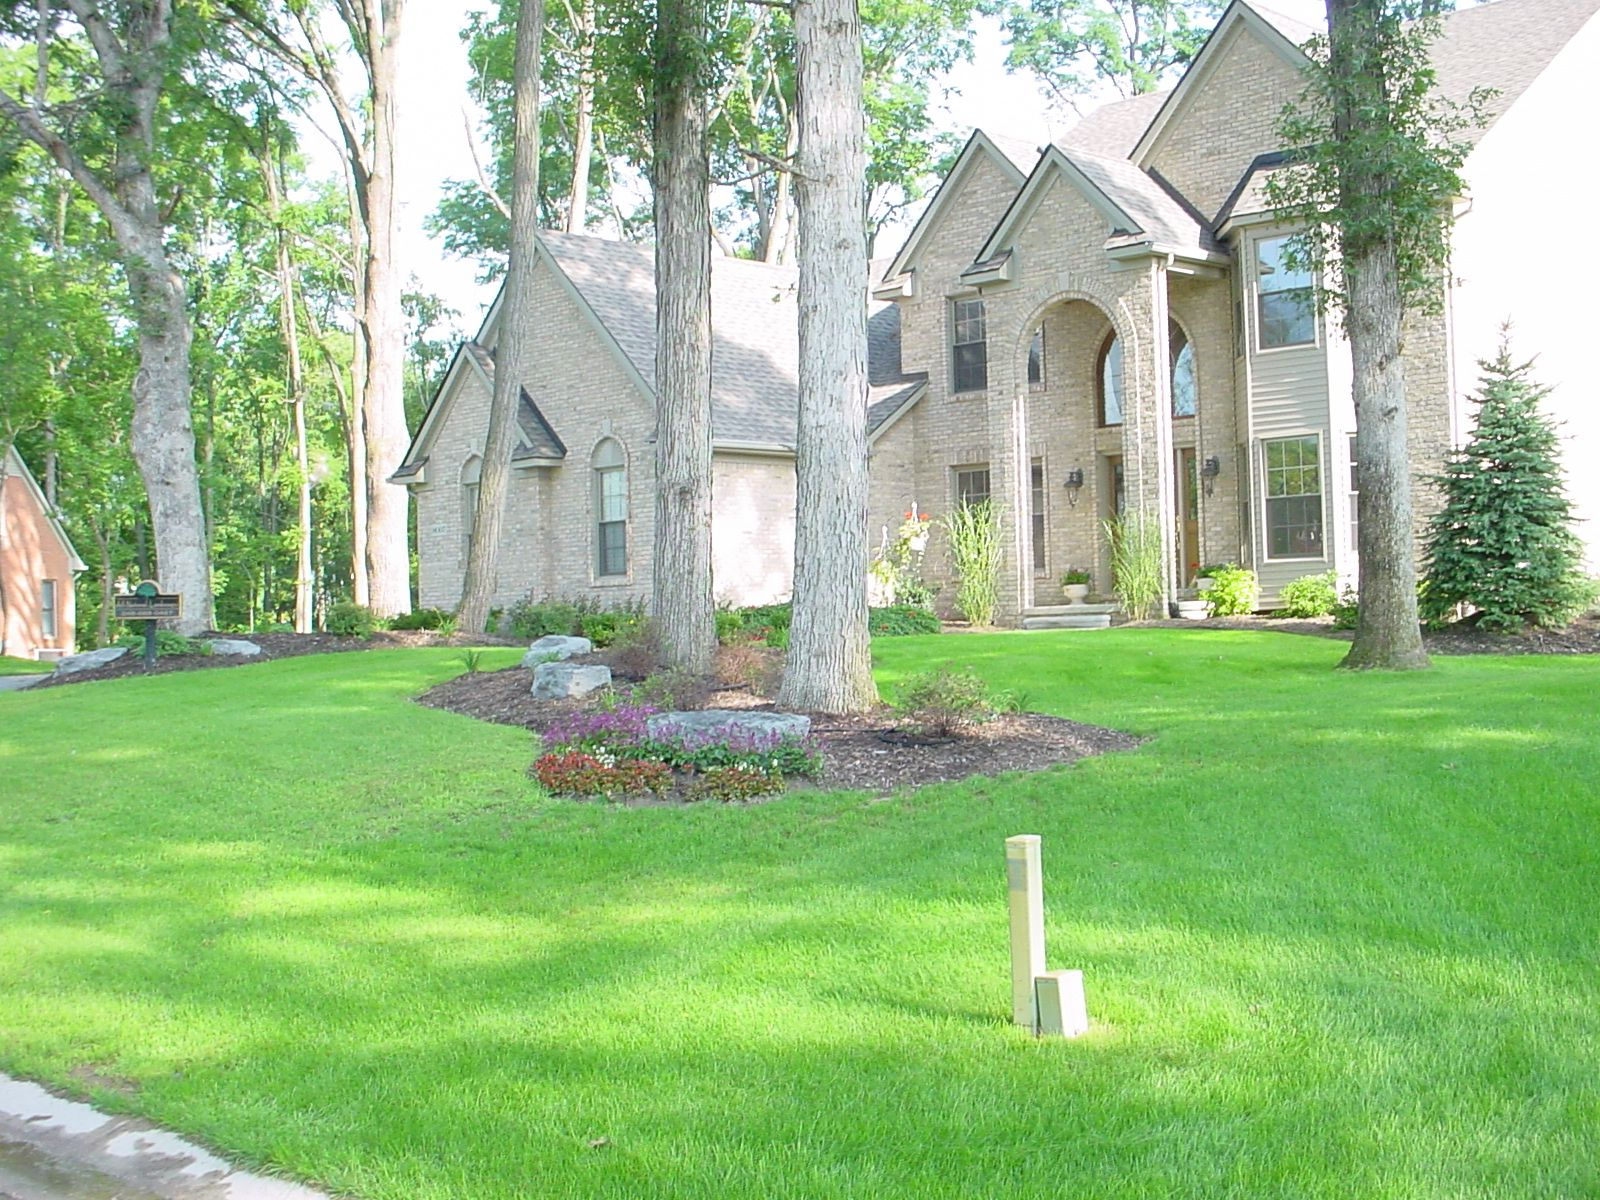 Mature landscaping trees